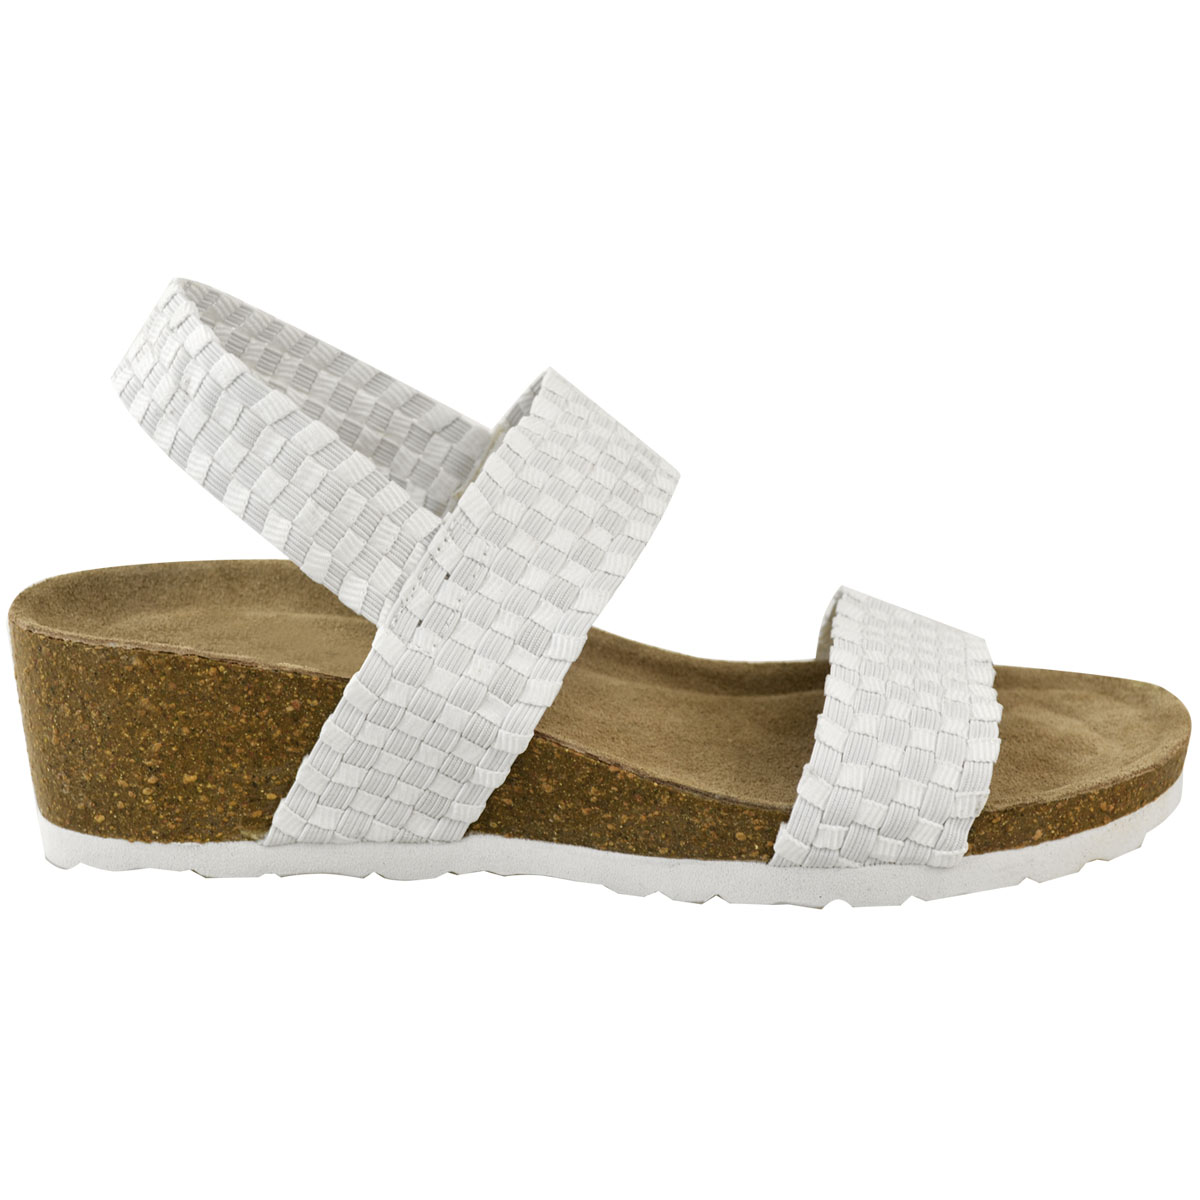 53a9310a61e Womens Ladies Low Wedge Heel Sandals Wide Fit Elastic Stretch ...